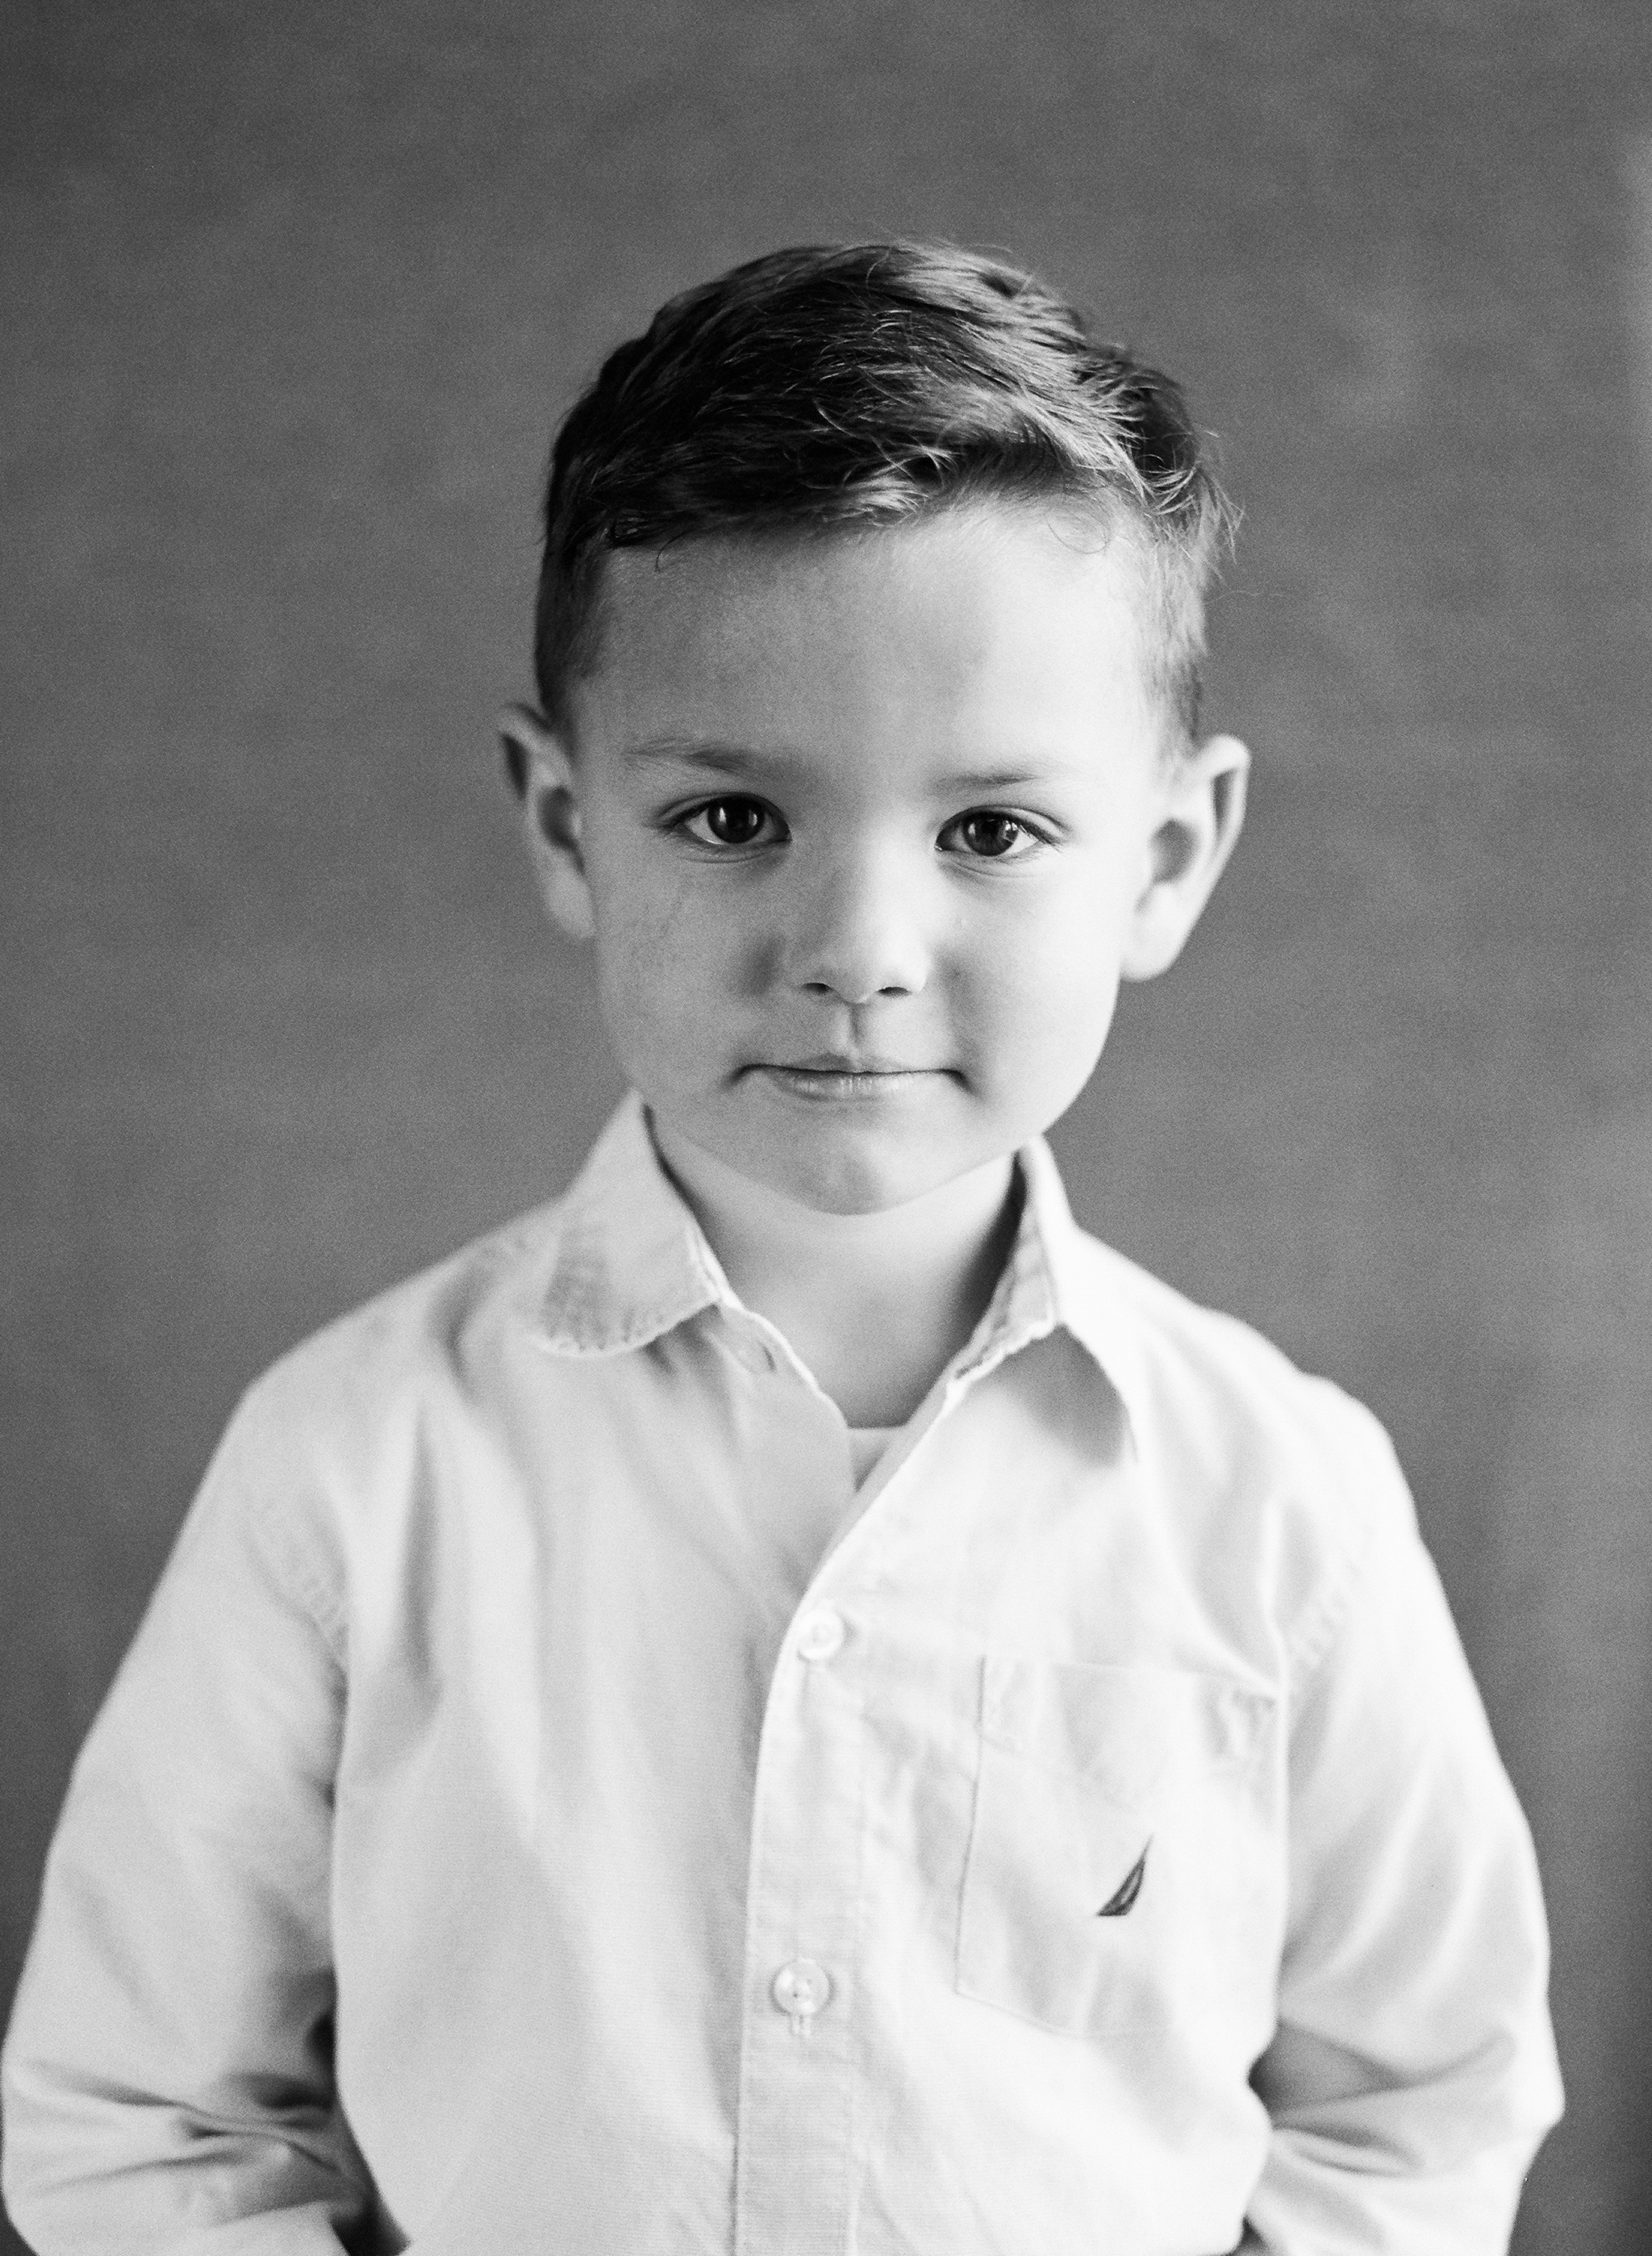 nashville-franklin-blackandwhite-childrens-portraiture-22.JPG